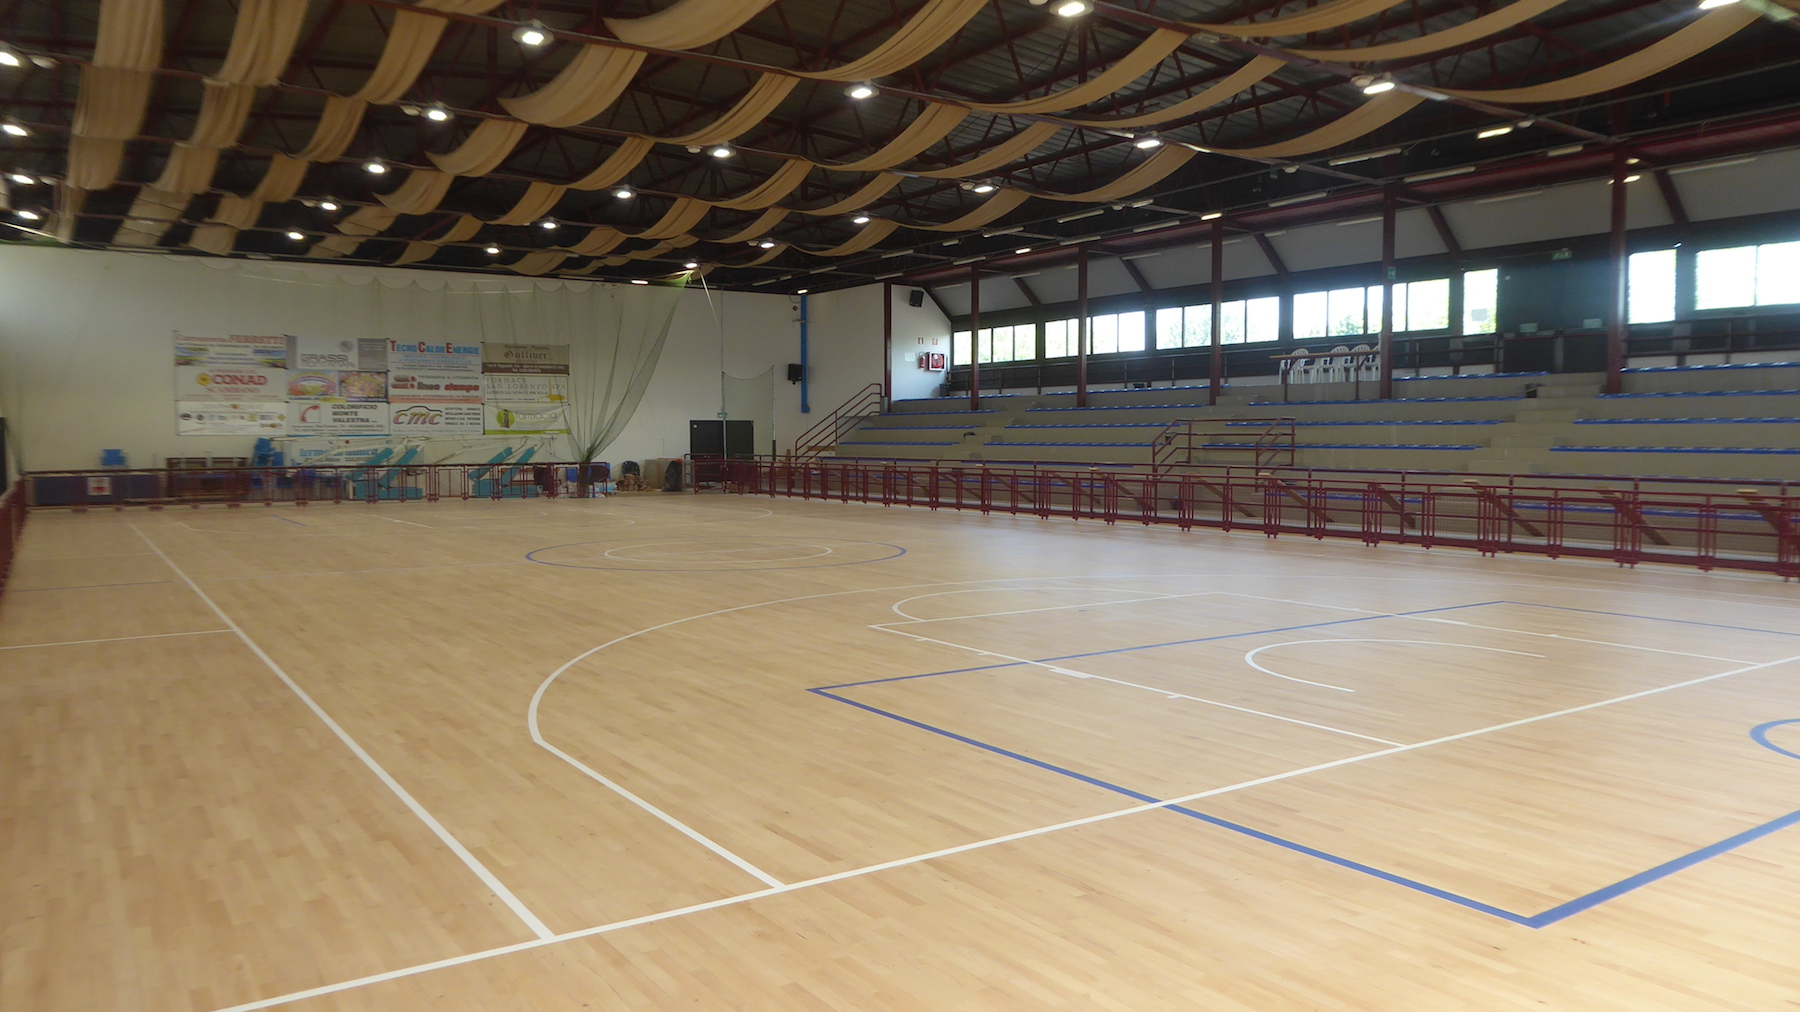 Refurbishment of the sports flooring of the PalaRegnani of Scandiano